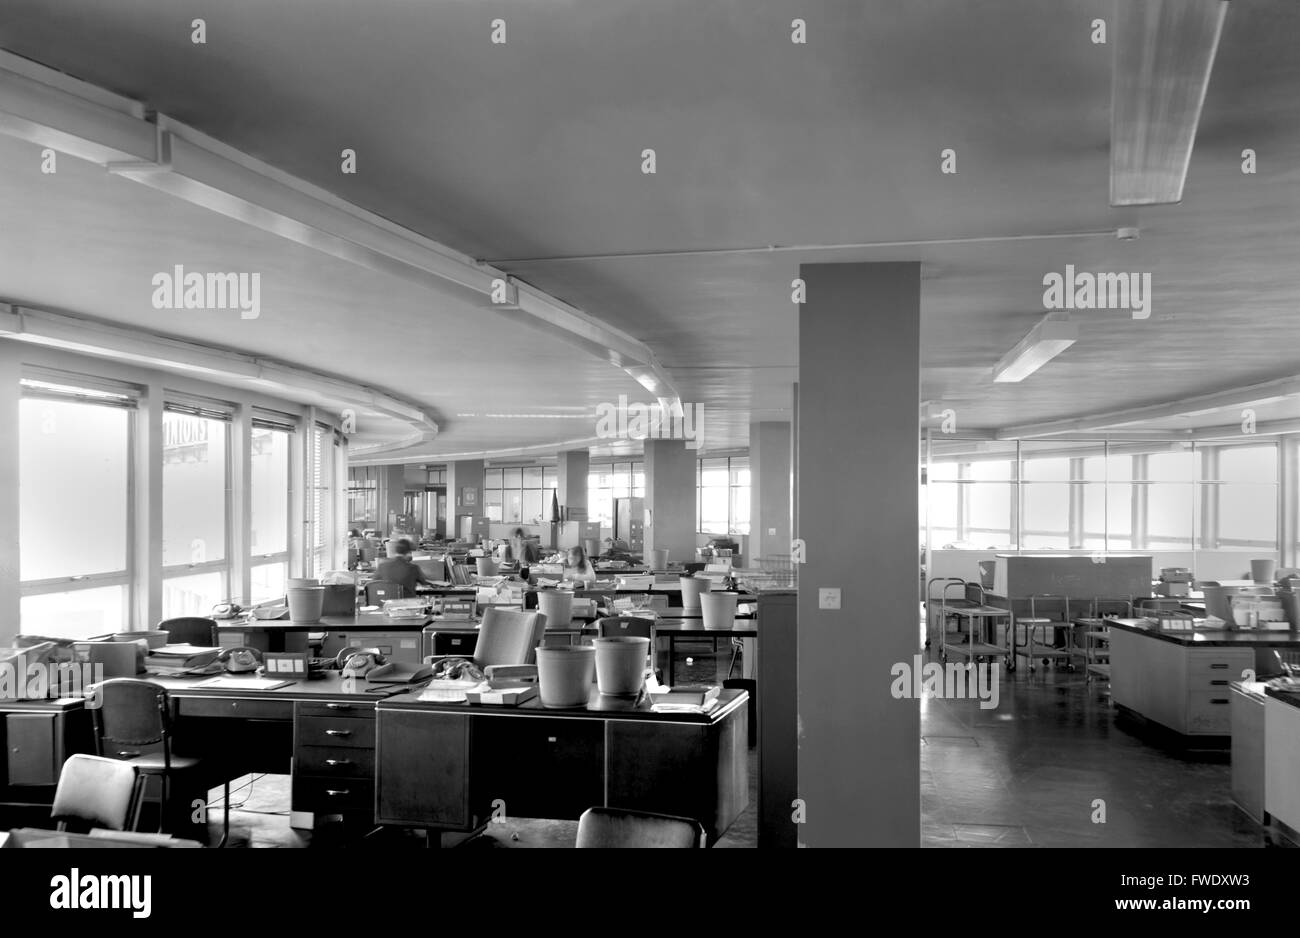 A Typical UK 1960s Open Plan Office